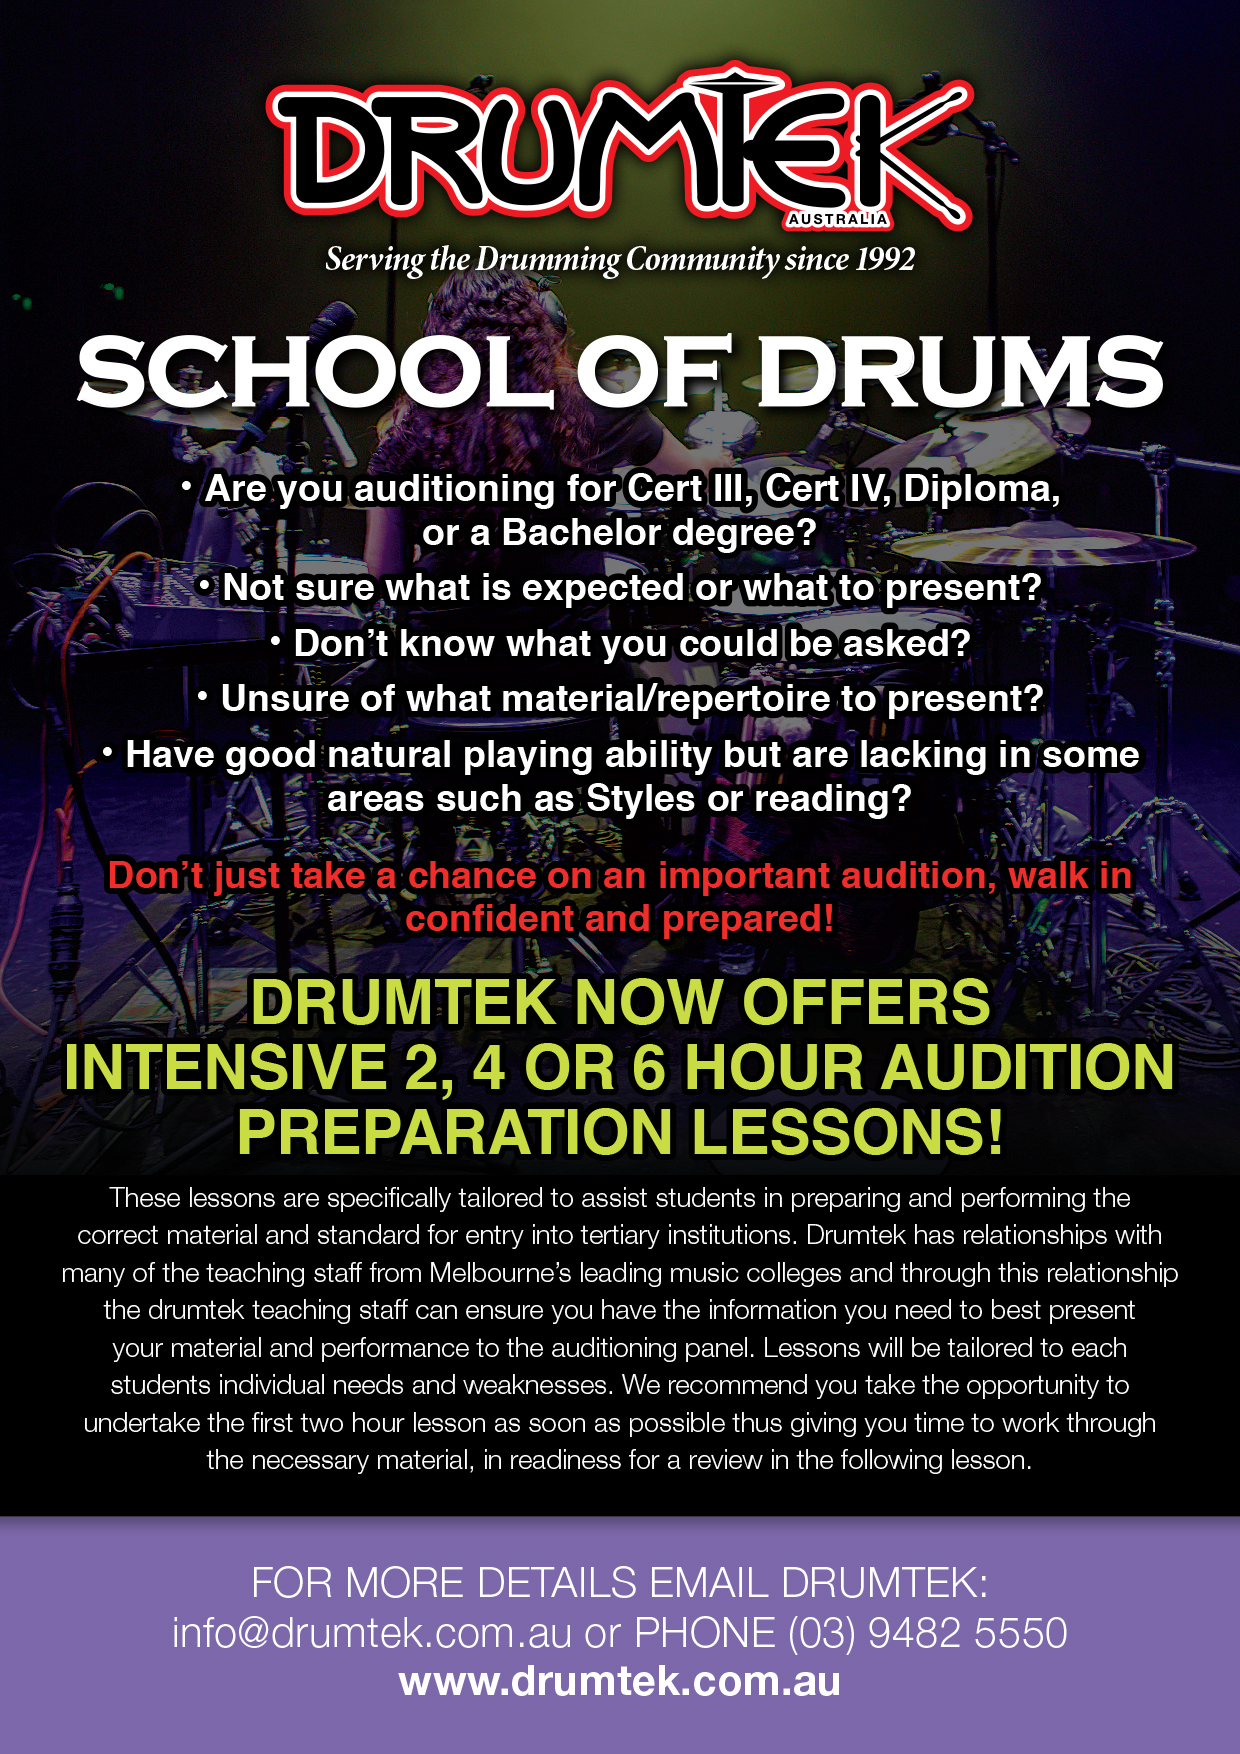 dt0223-school-of-drums-flyer.jpg